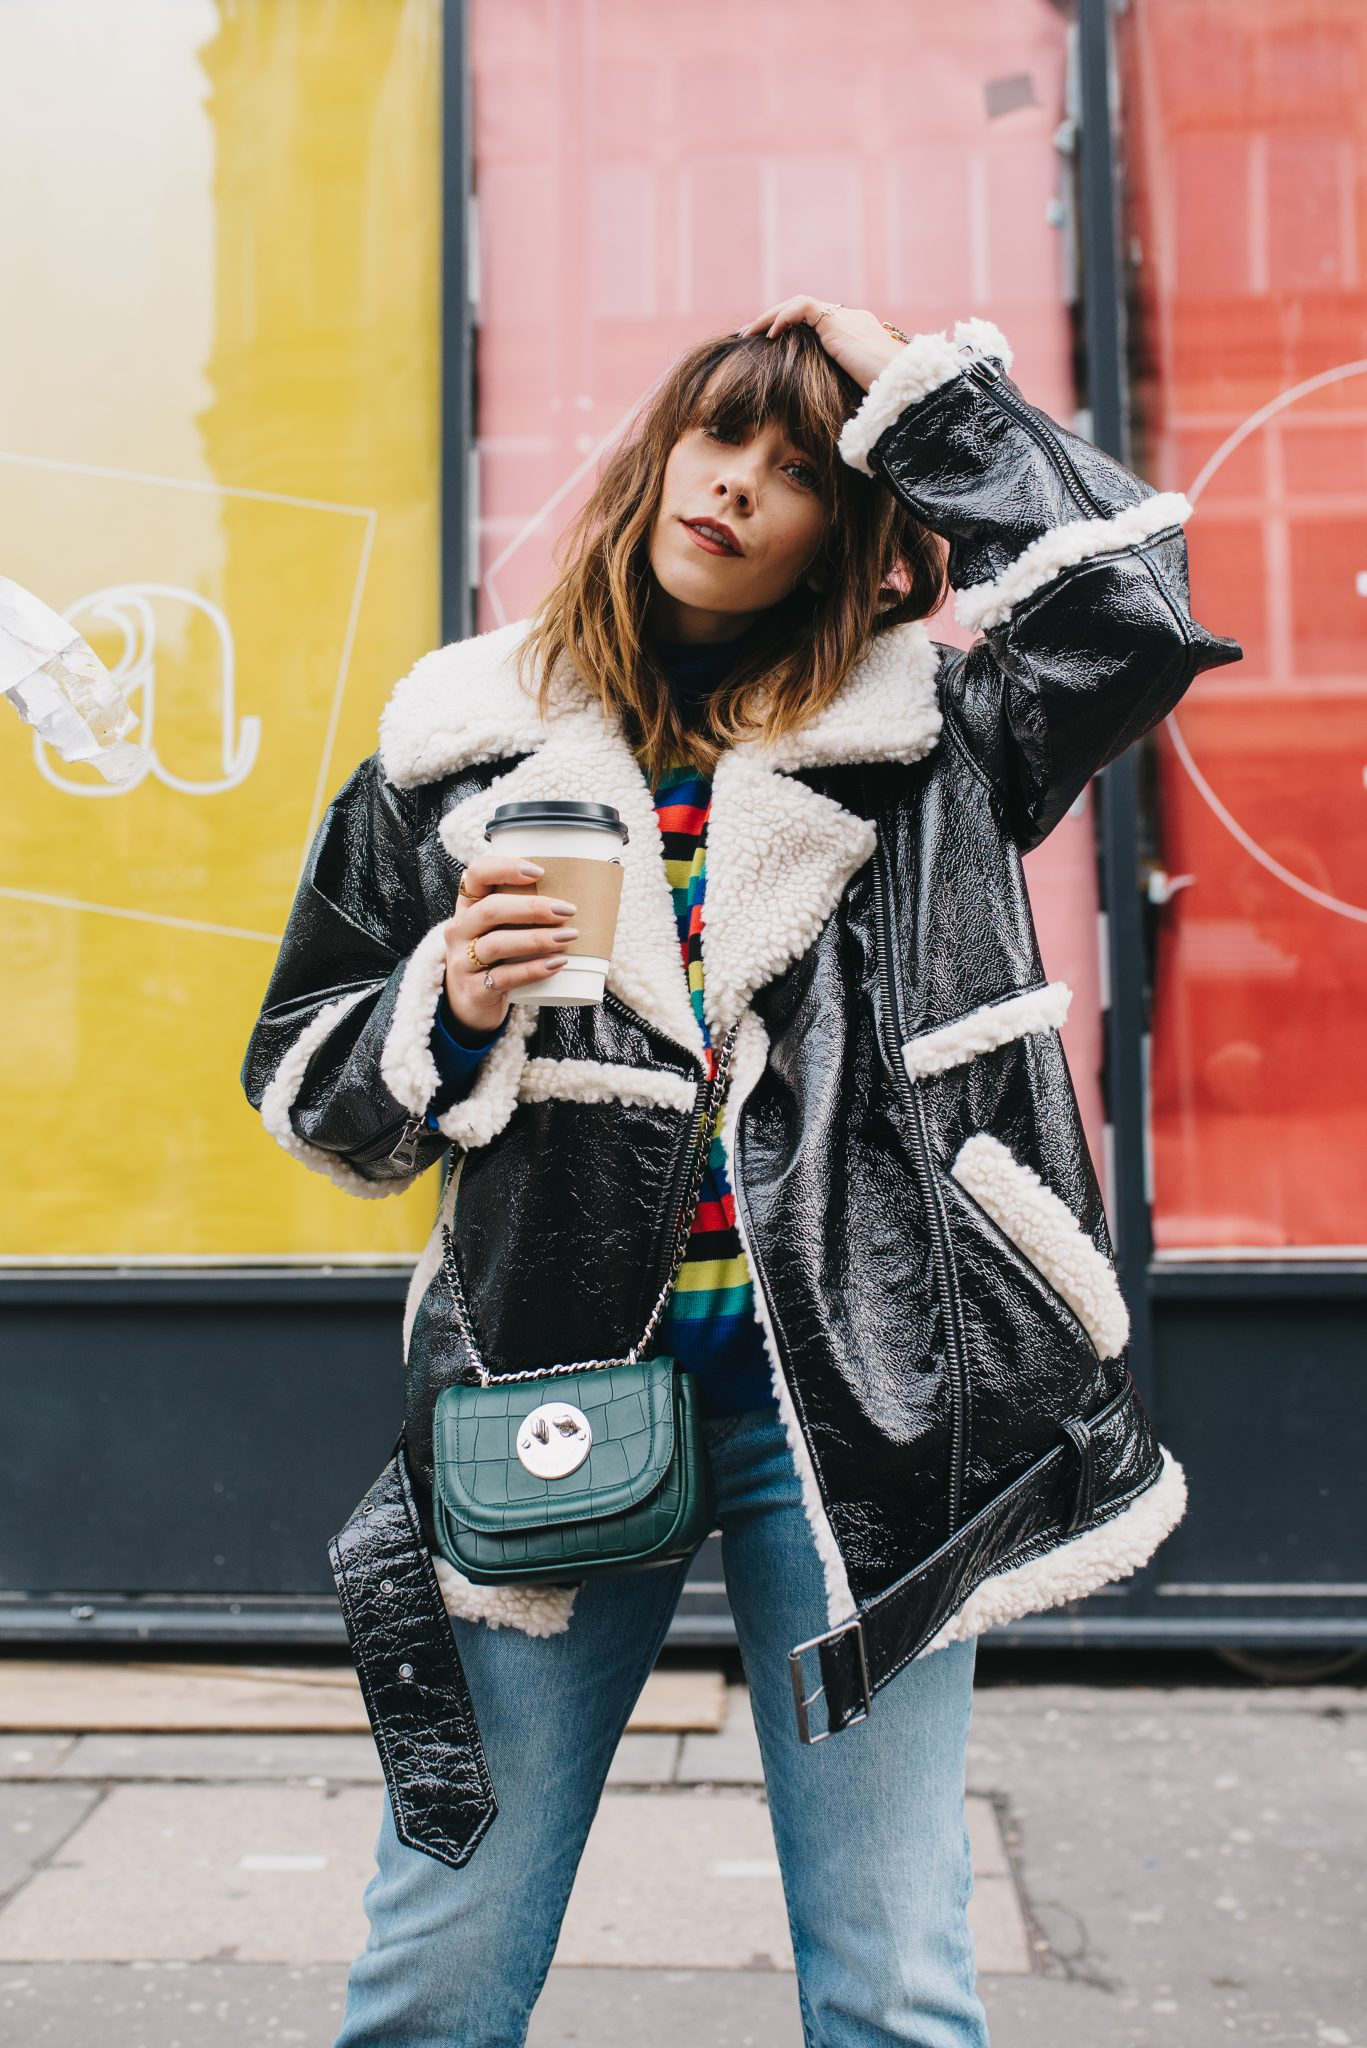 HOW TO STYLE VINYL THIS WINTER